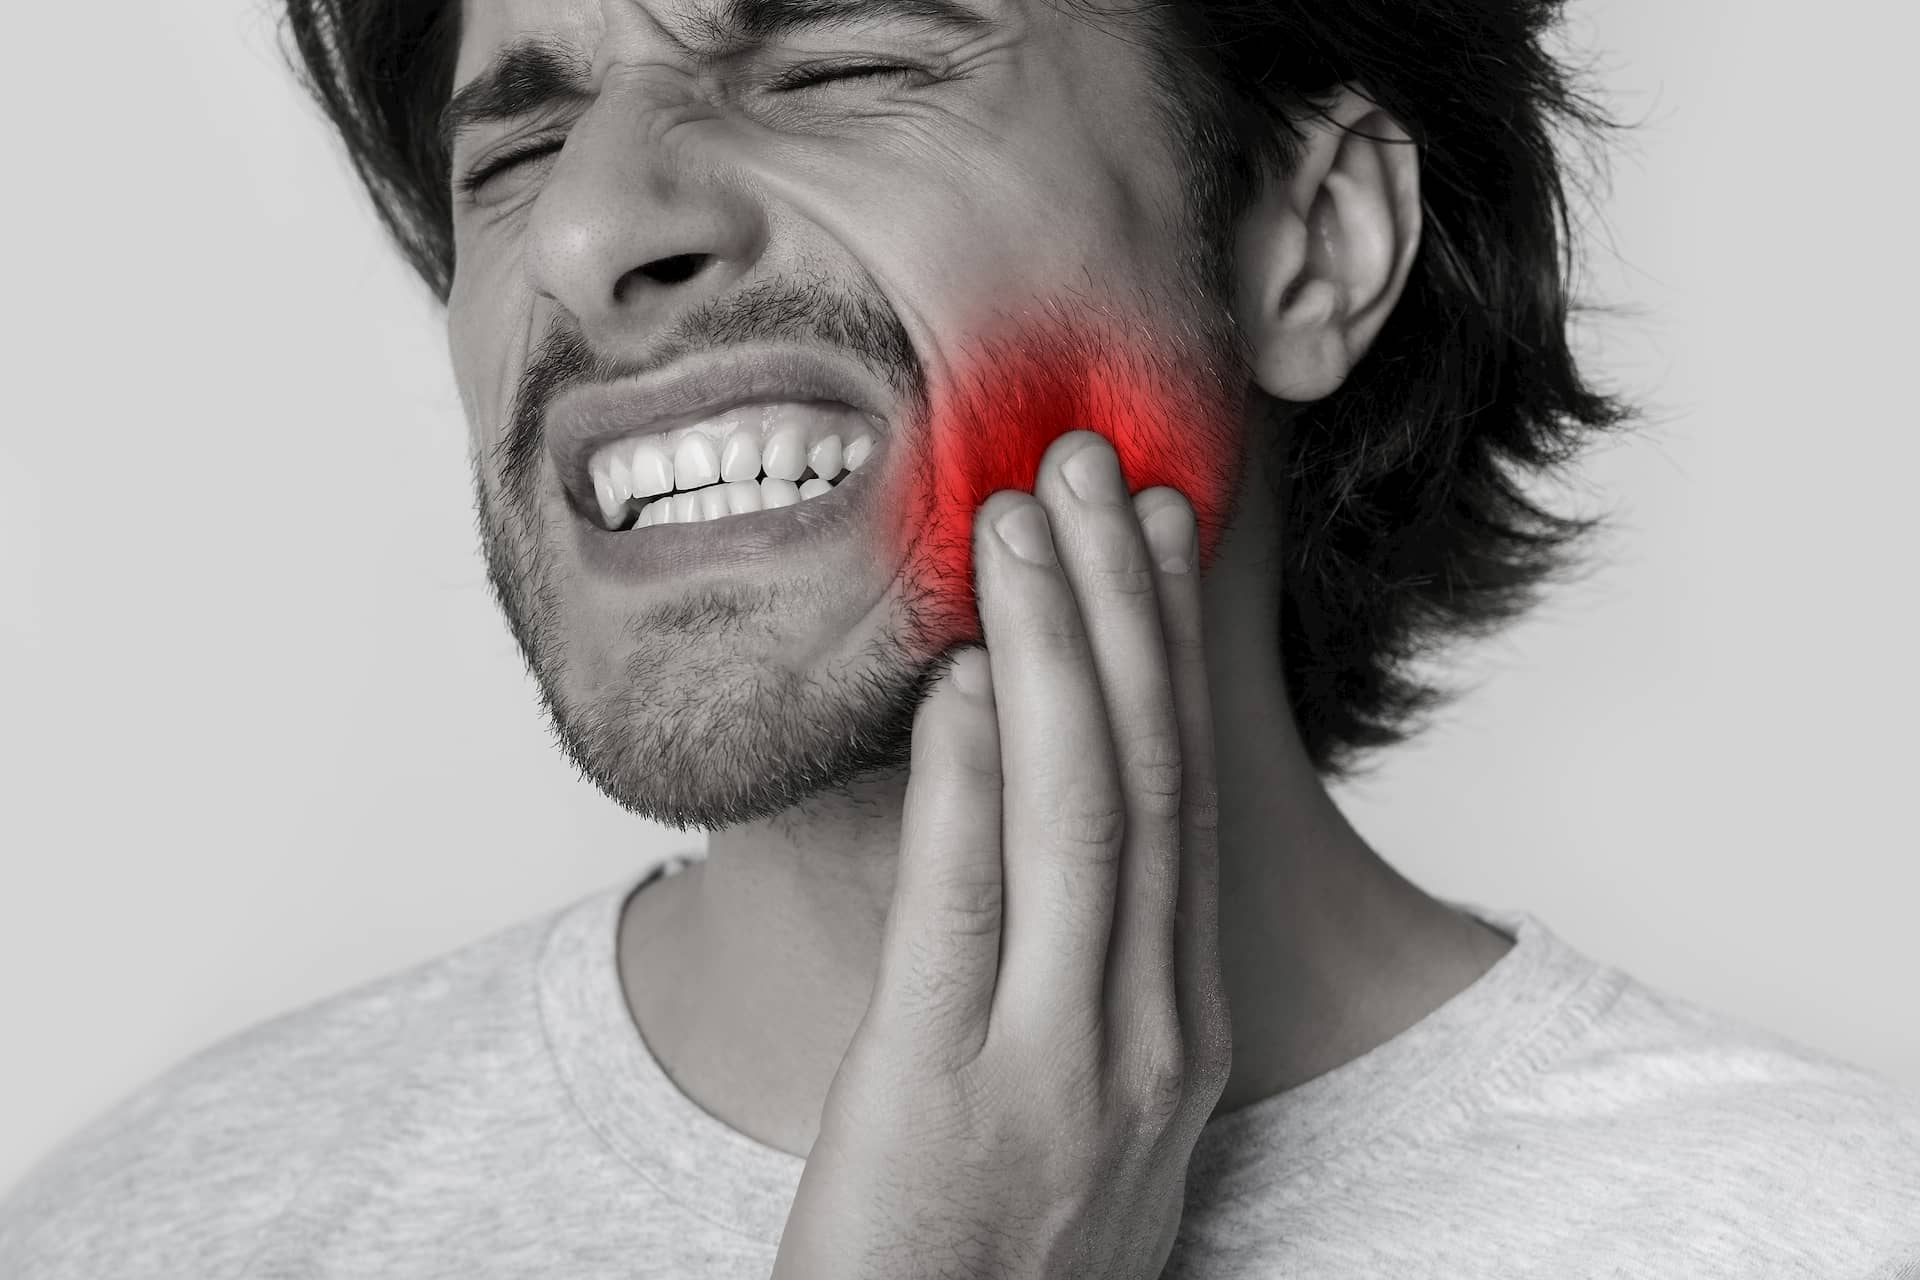 major-tooth-pain-on-man-root-canal